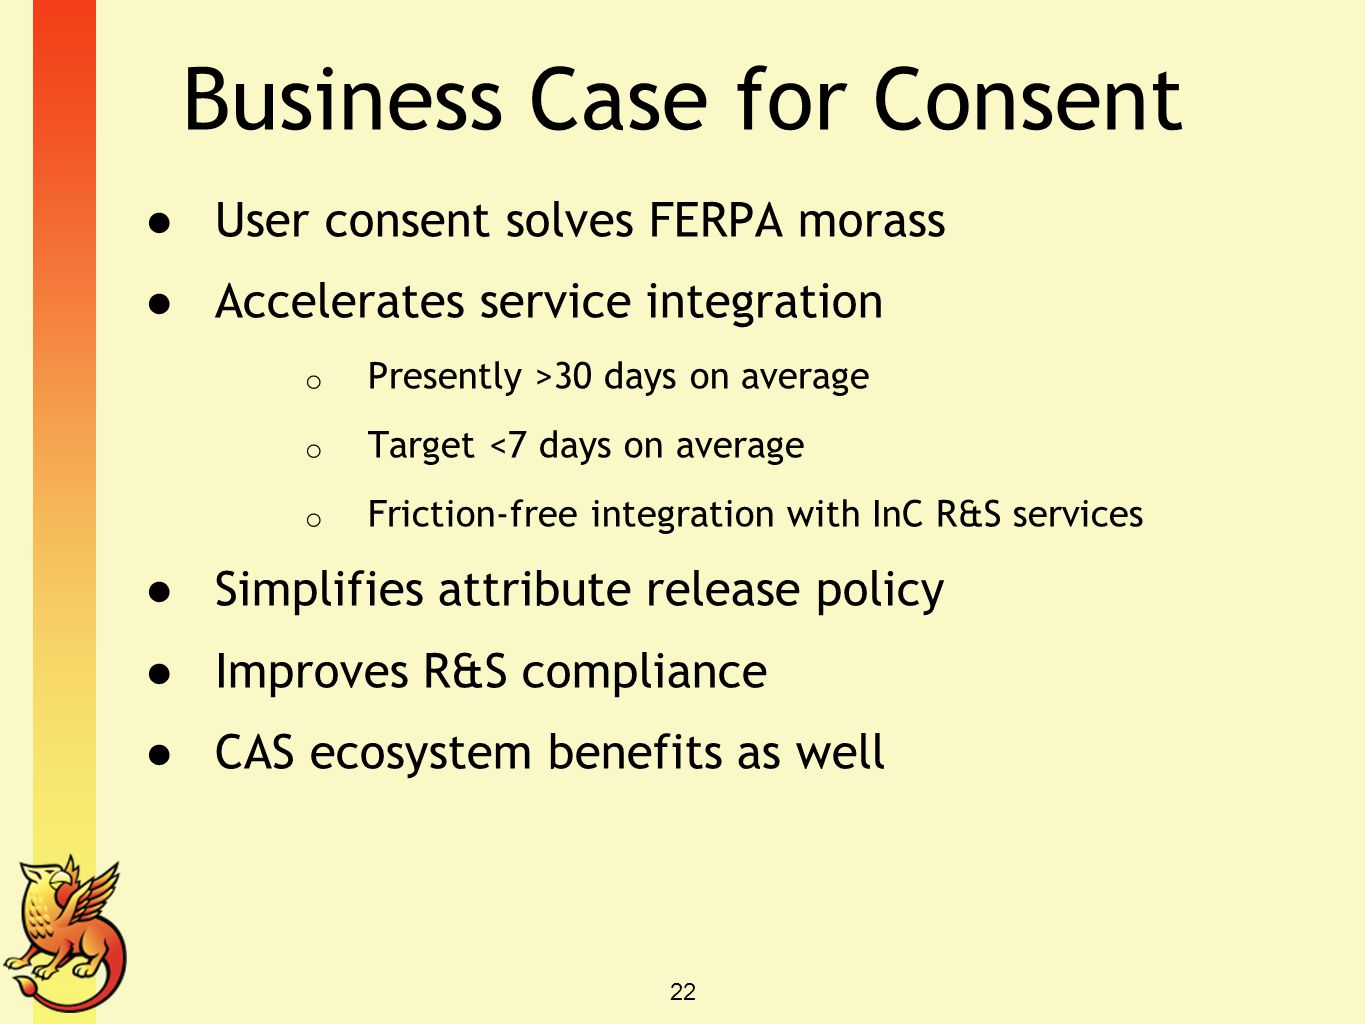 Business Case for Consent